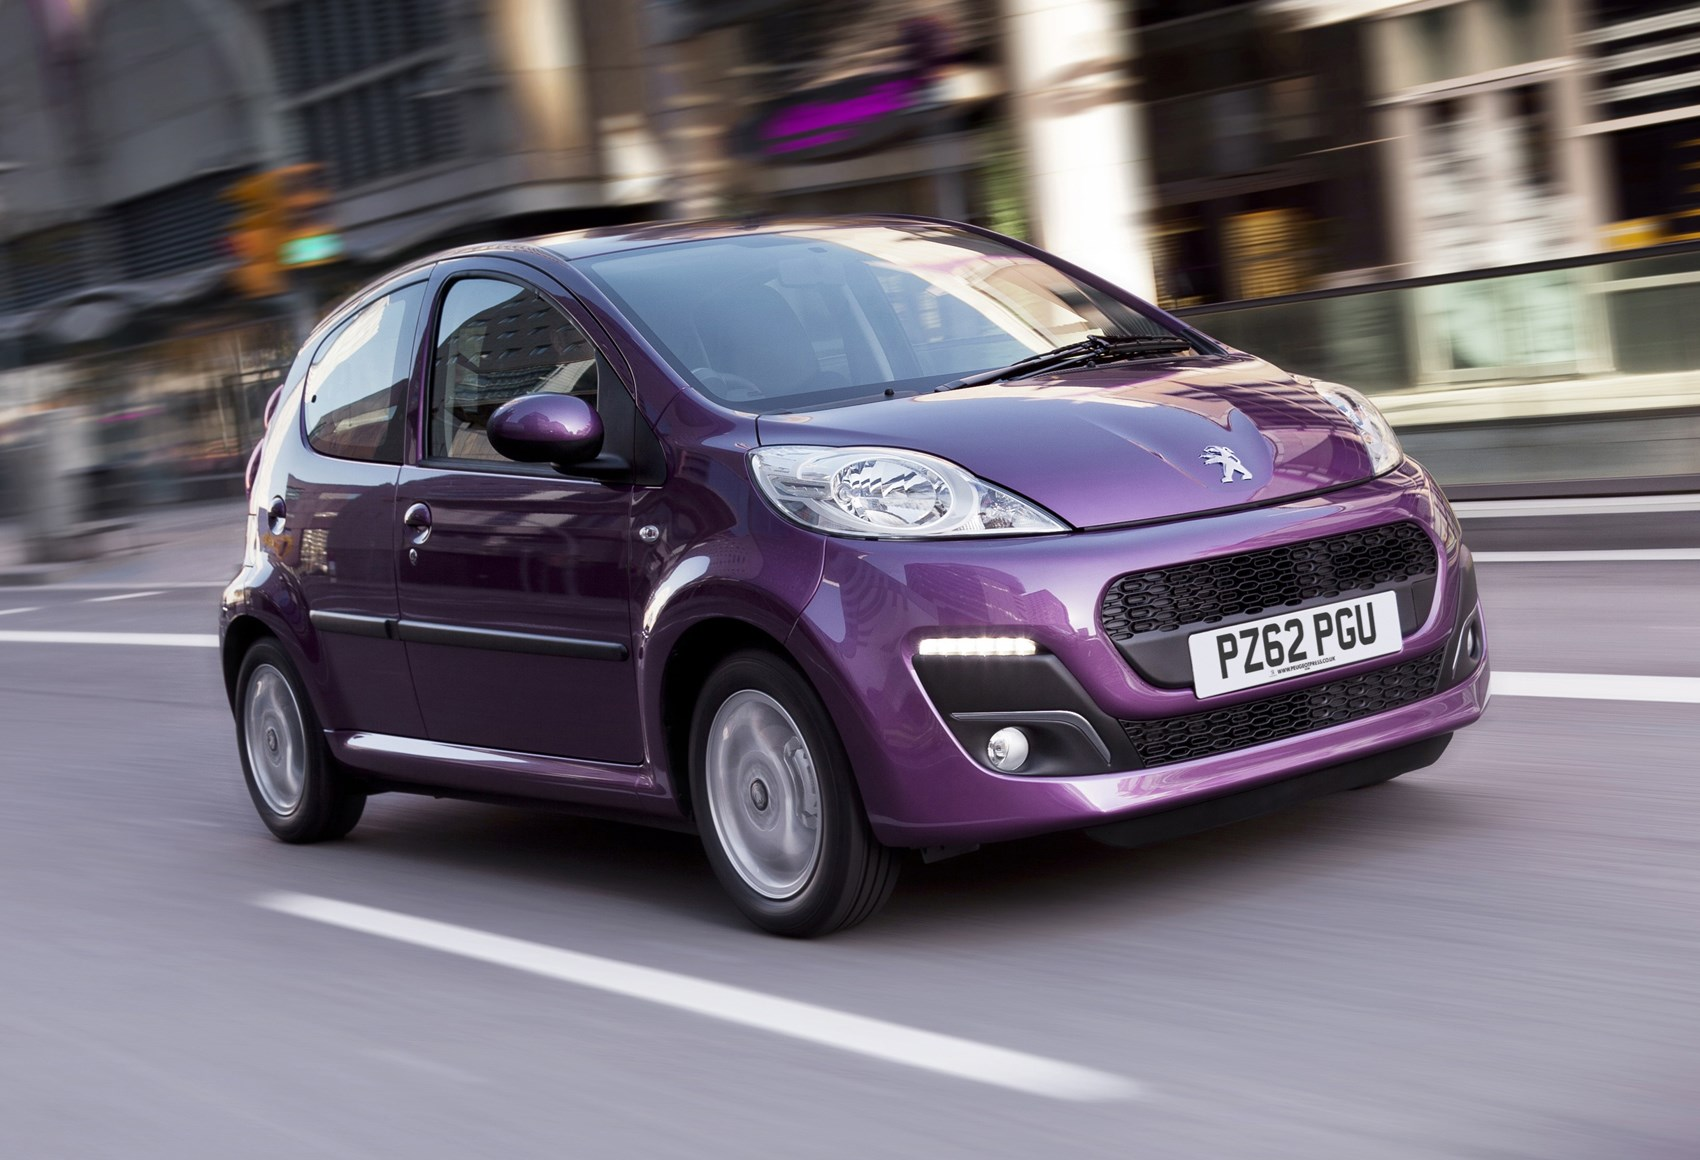 Peugeot 107 Used Car Review 2005 2014 Autos Post